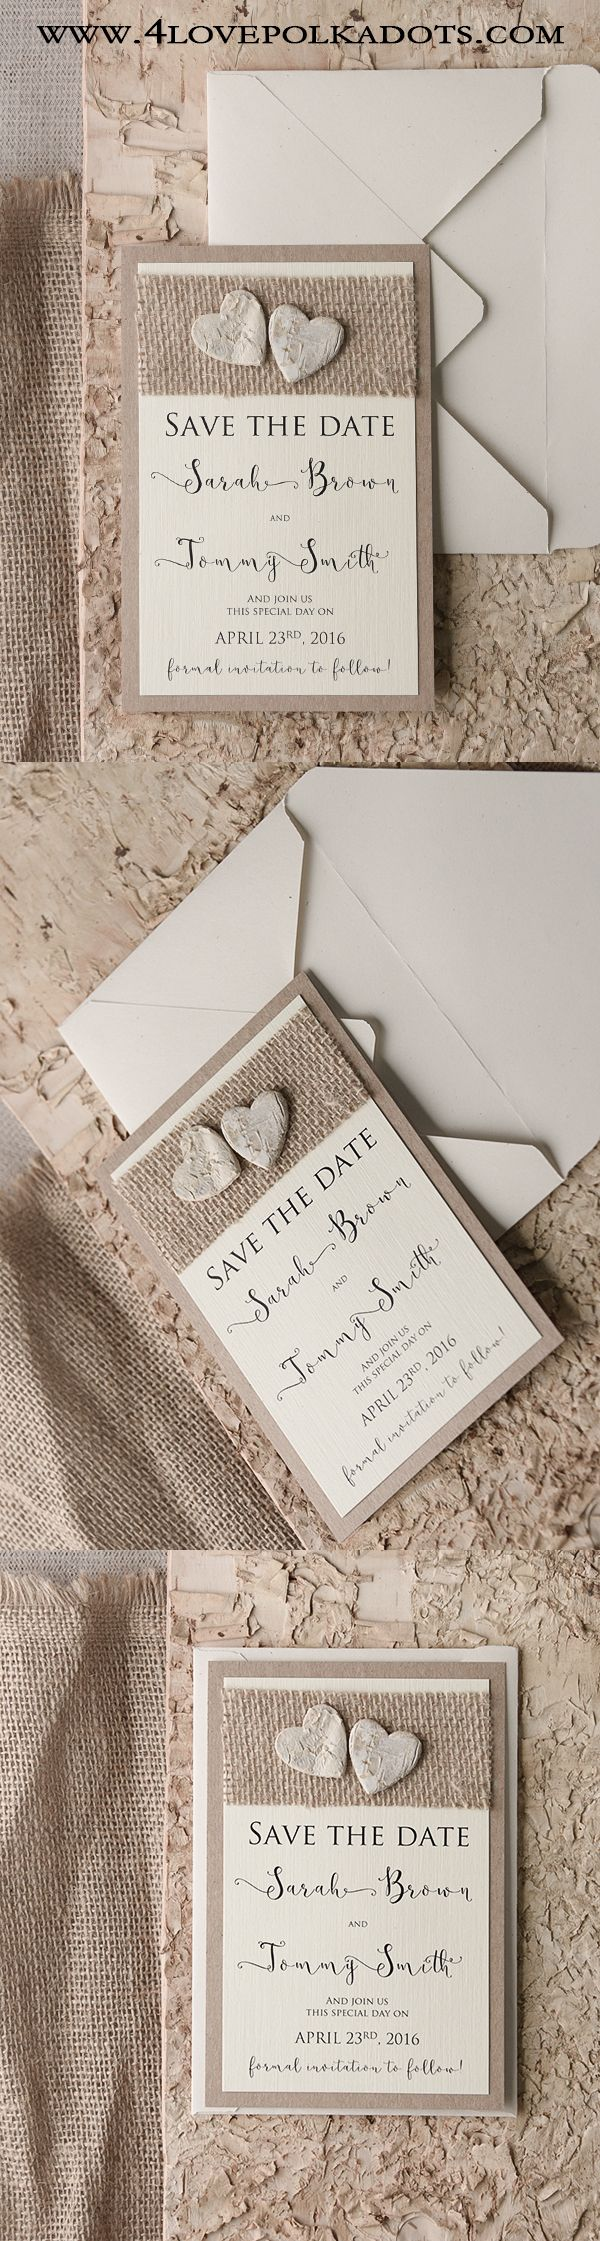 realtree wedding invitations%0A Rustic Save the Date Cards  countrywedding